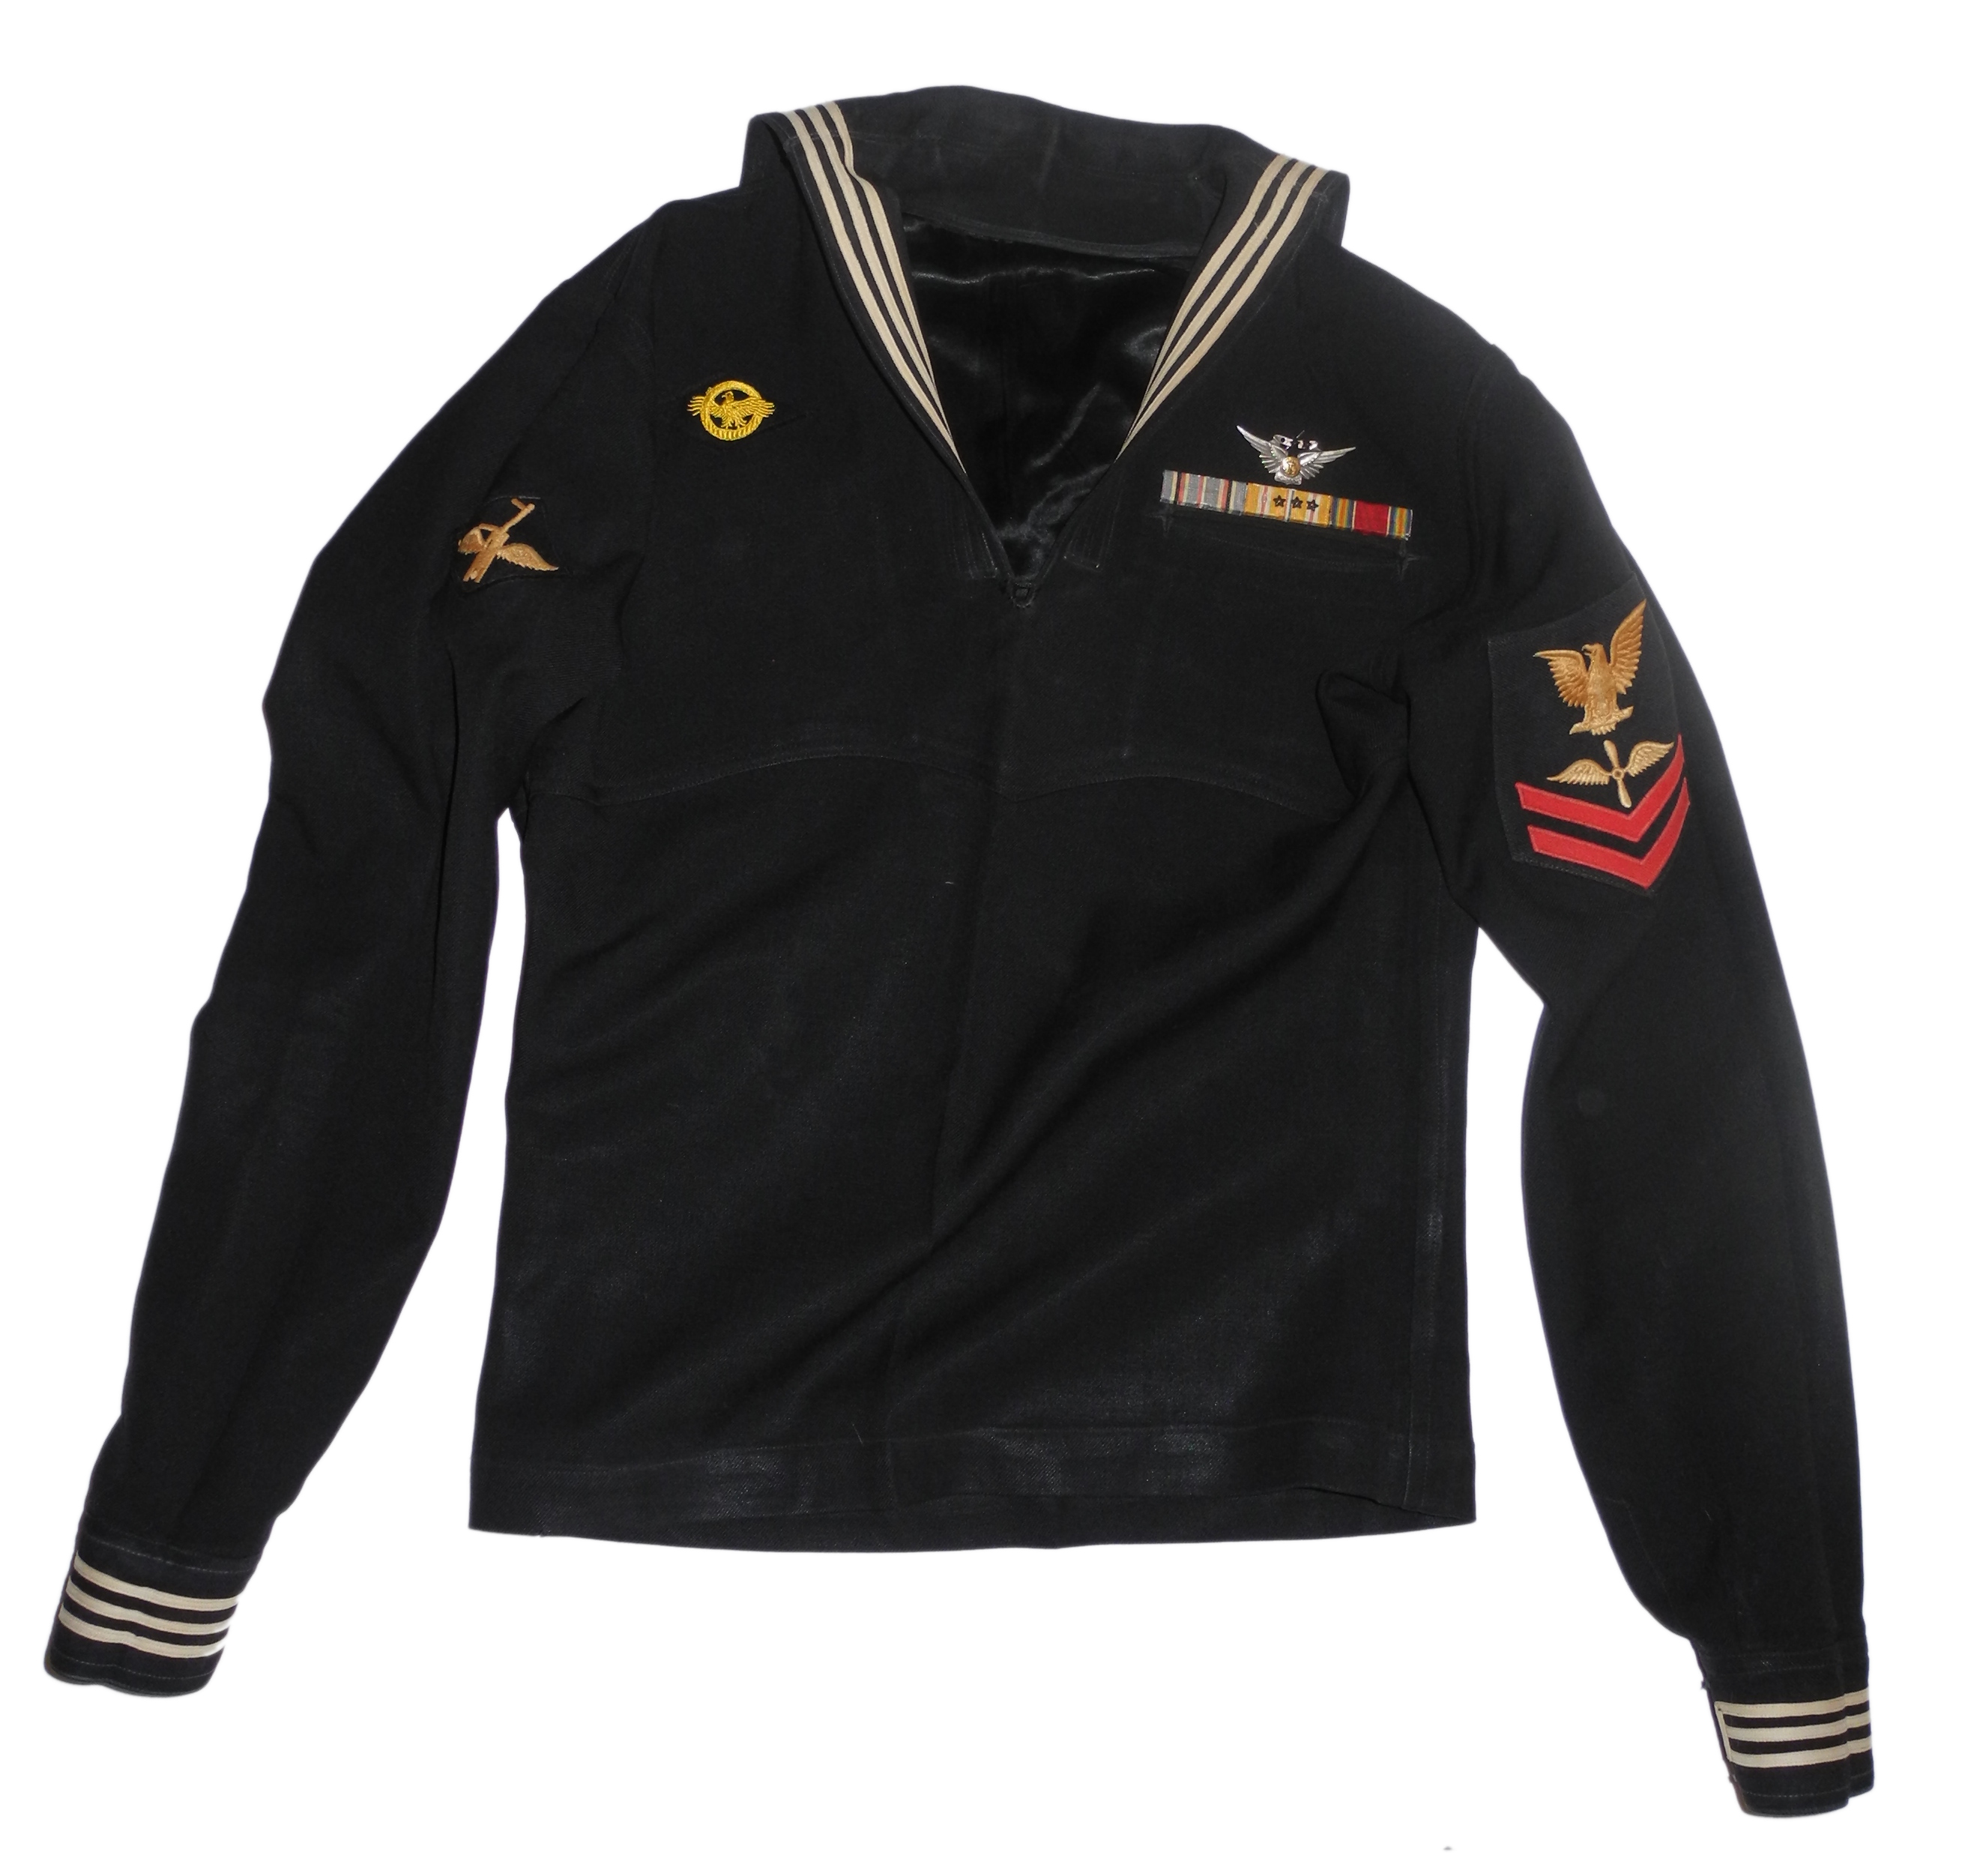 US Navy complete aircrew uniform